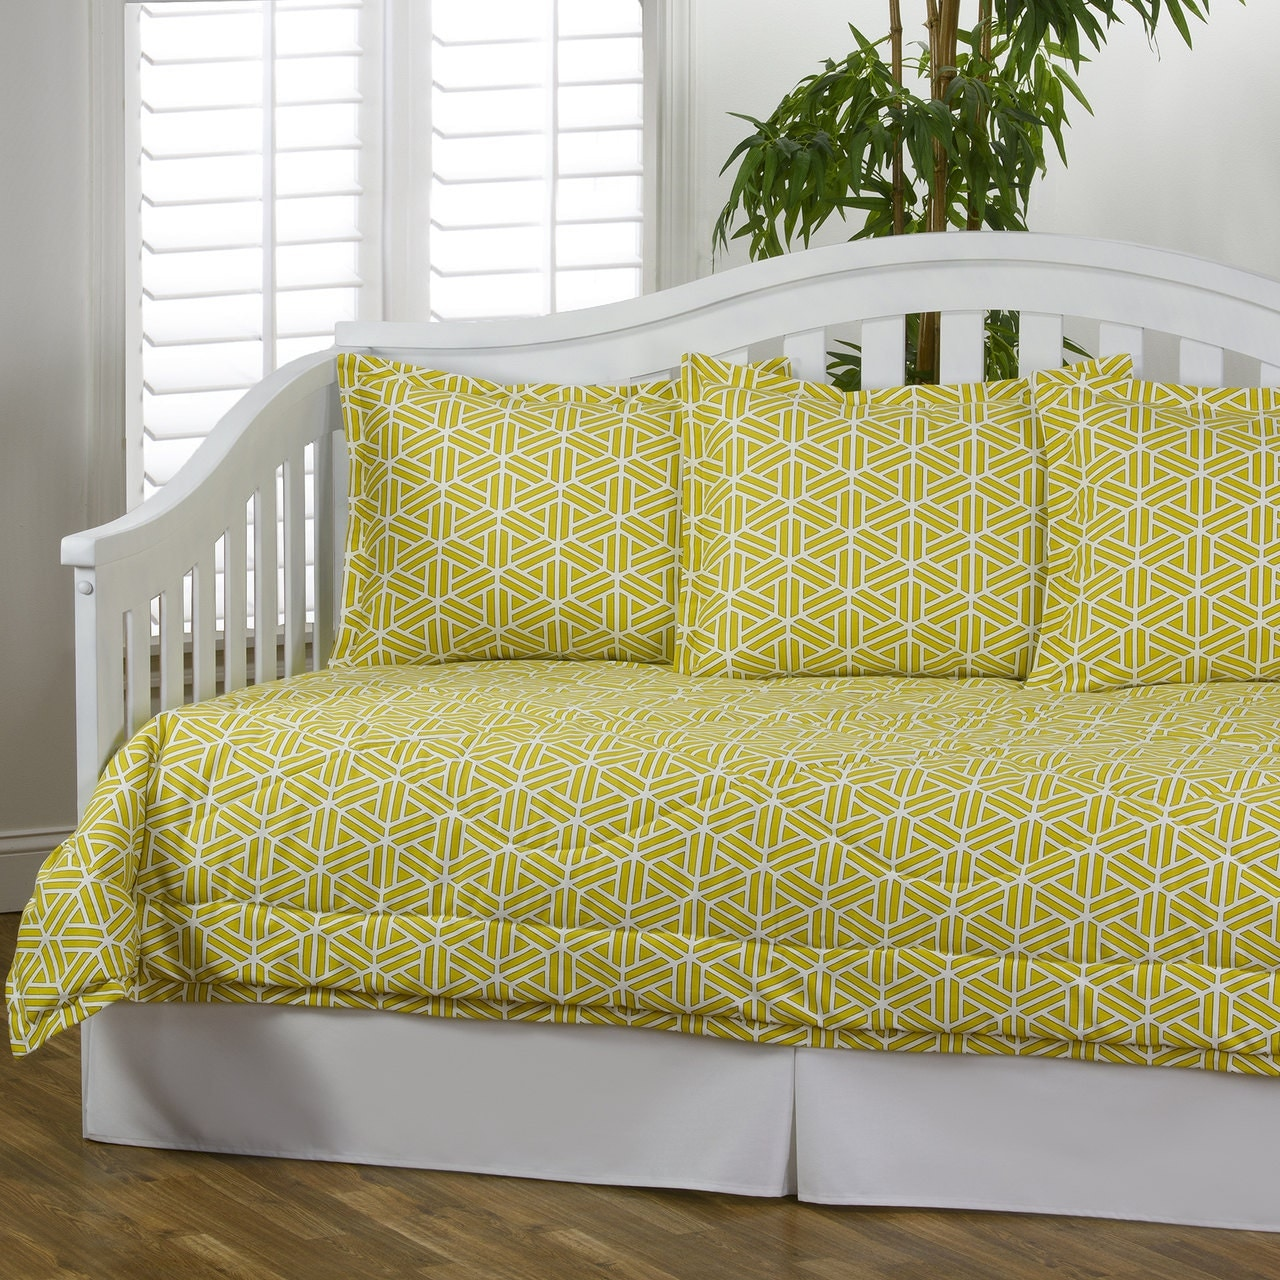 Daybed Bedding Daybed Comforter Daybed Quilts Daybed Sets